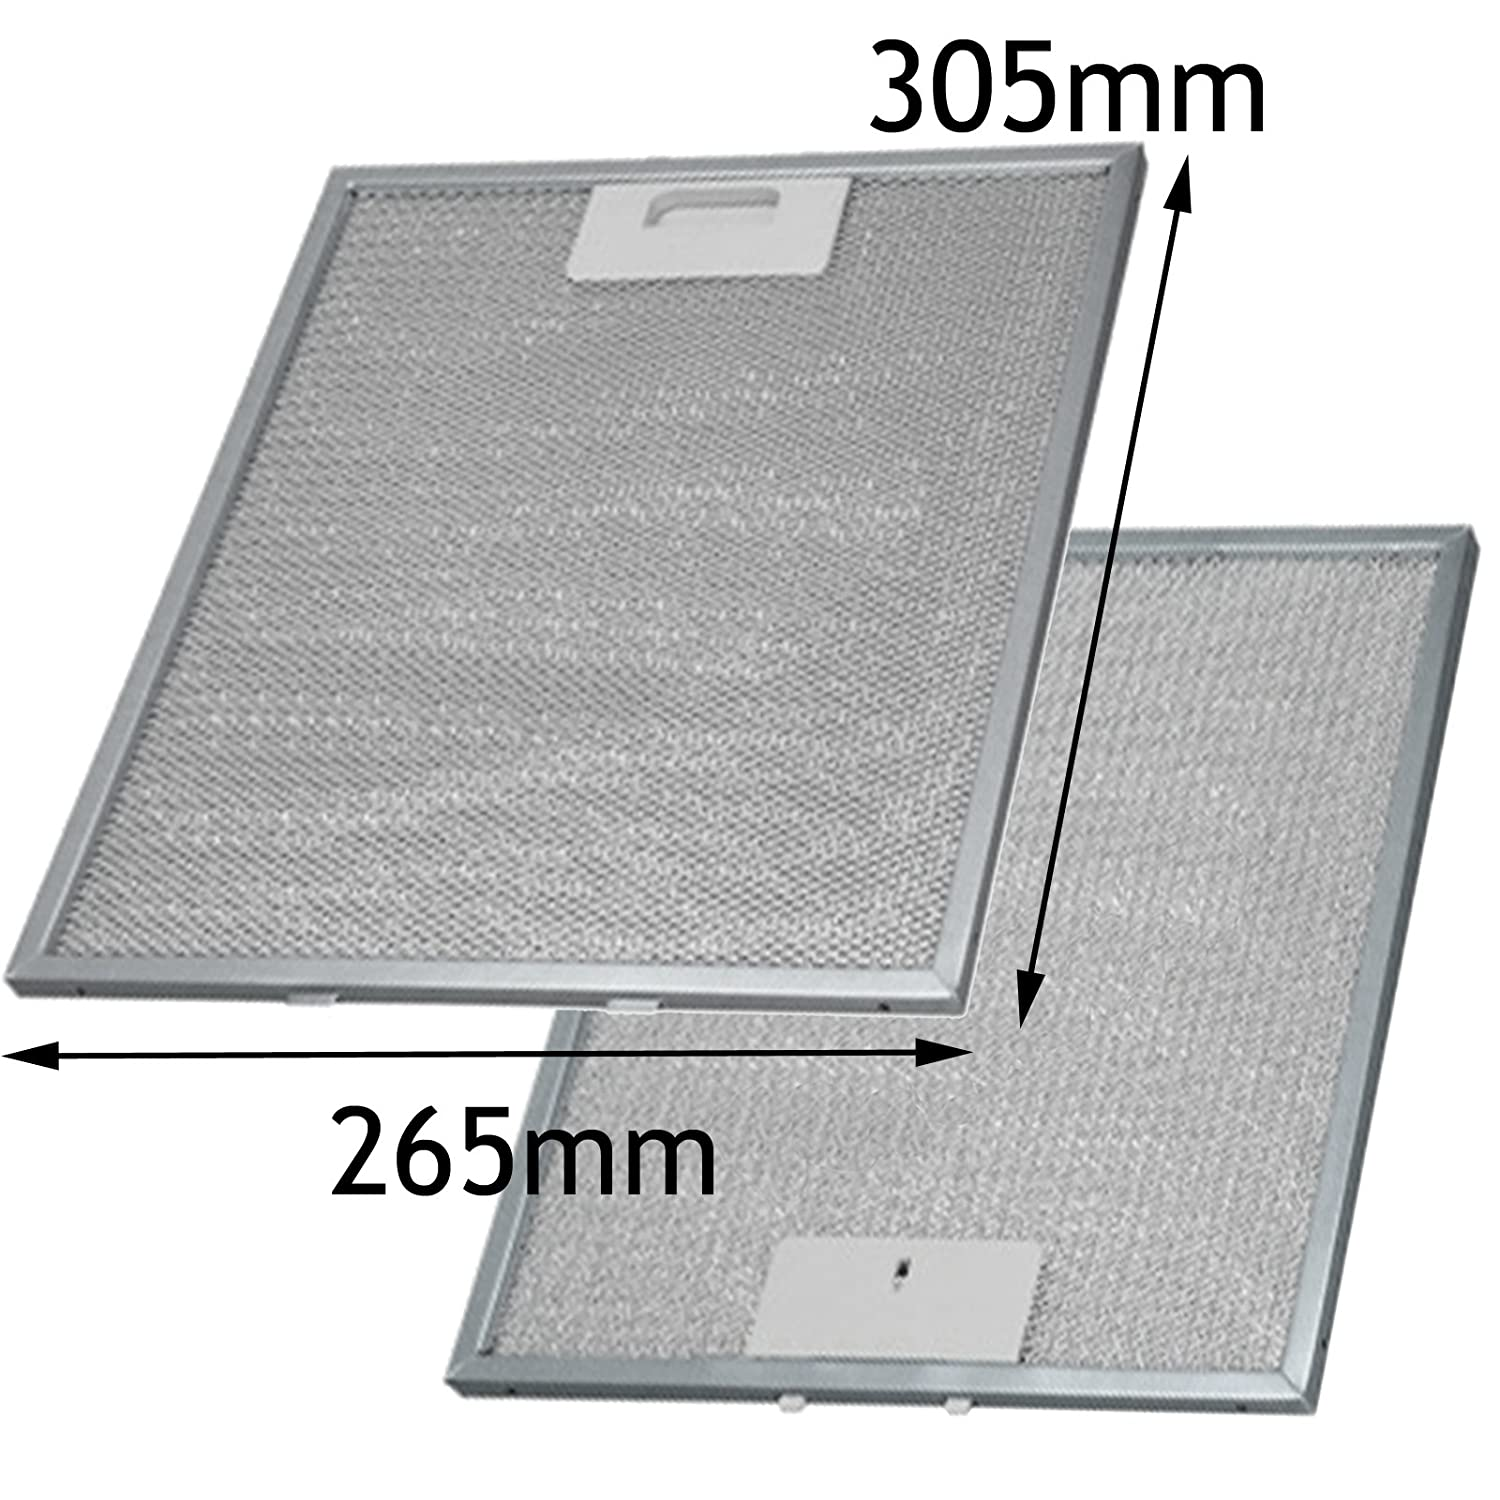 SPARES2GO Aluminium Grease Mesh Filter for IKEA Cooker Hood Fan Vent (305 x 265 mm, Pack of 2)